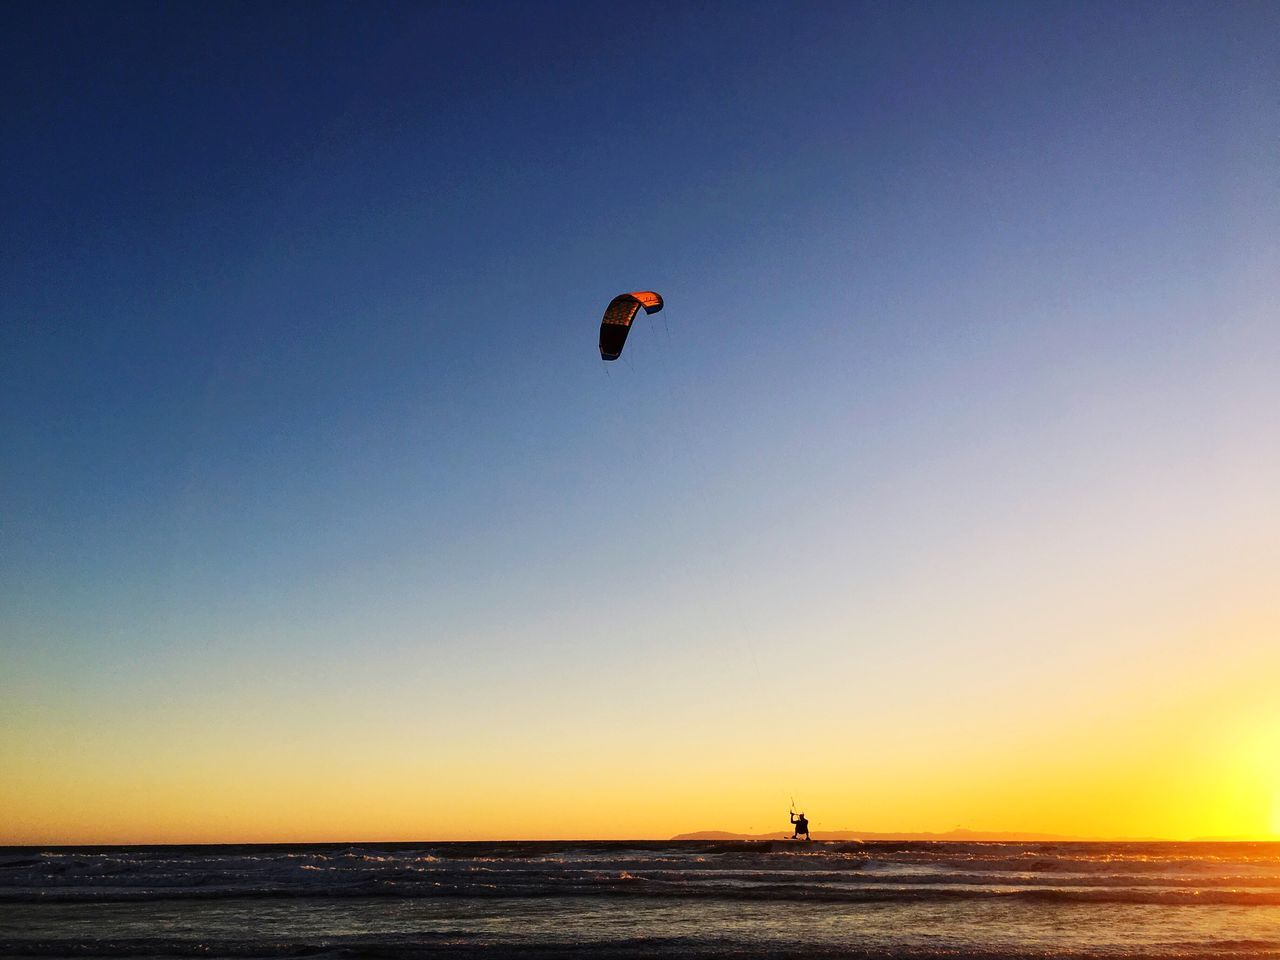 Kite boarding Sea Unrecognizable Person Adventure Lifestyles Beauty In Nature Nature Leisure Activity Horizon Over Water Scenics Water Extreme Sports One Person Silhouette Sky Outdoors Clear Sky Kiteboarding Sunset